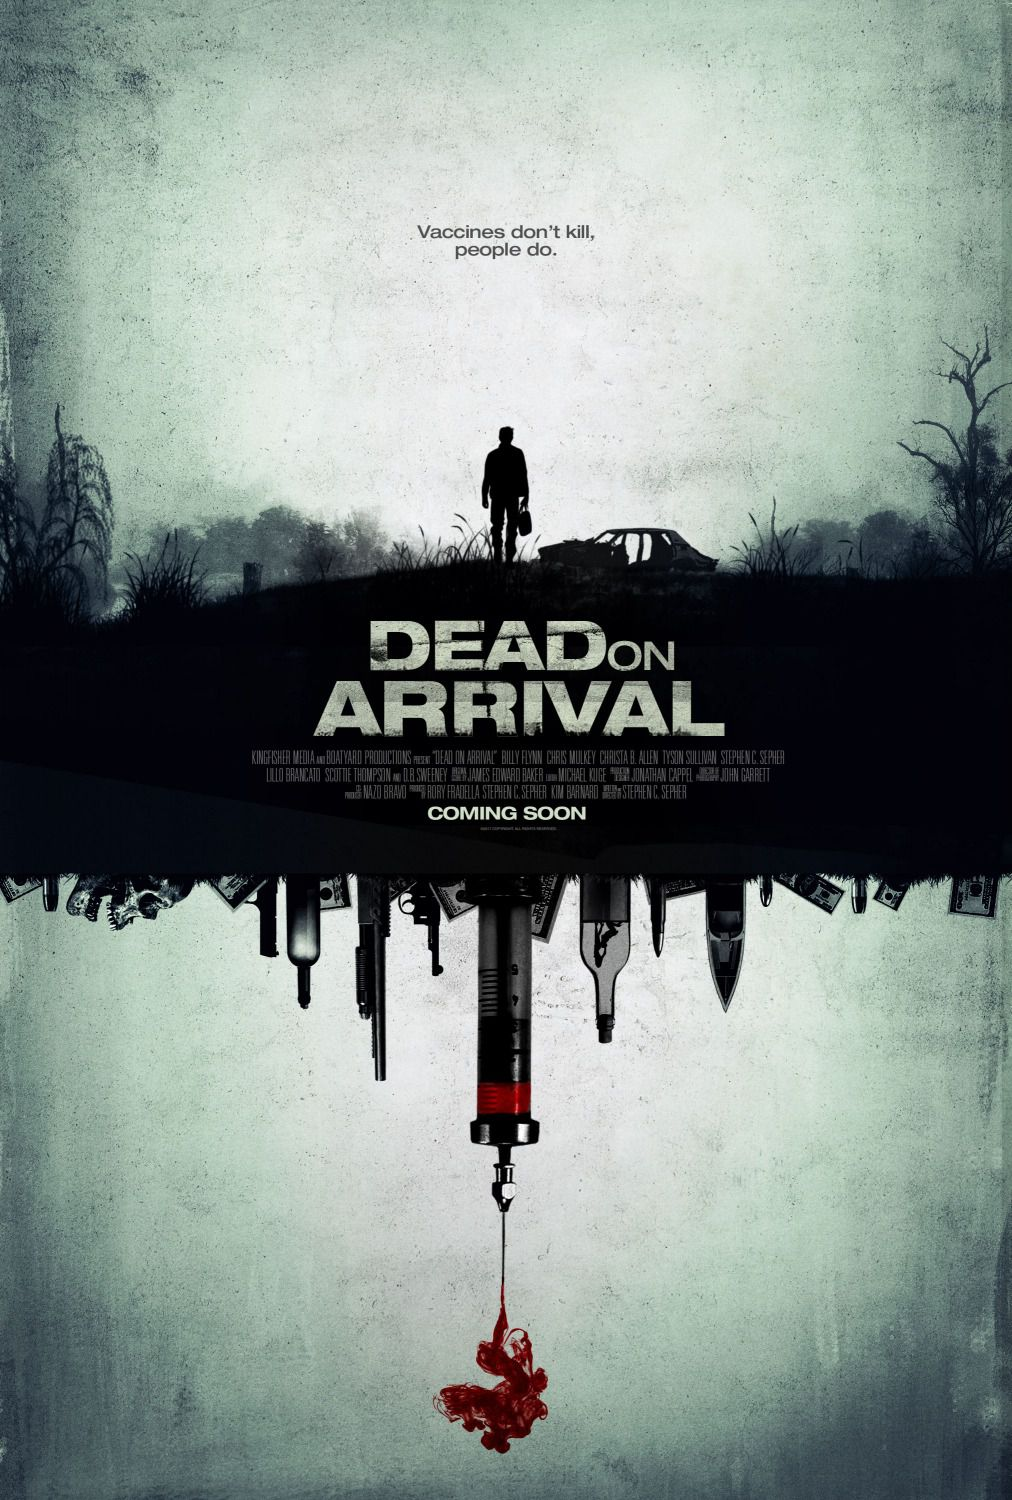 Dead on Arrival - vaccines don't kill, people do - scary film poster